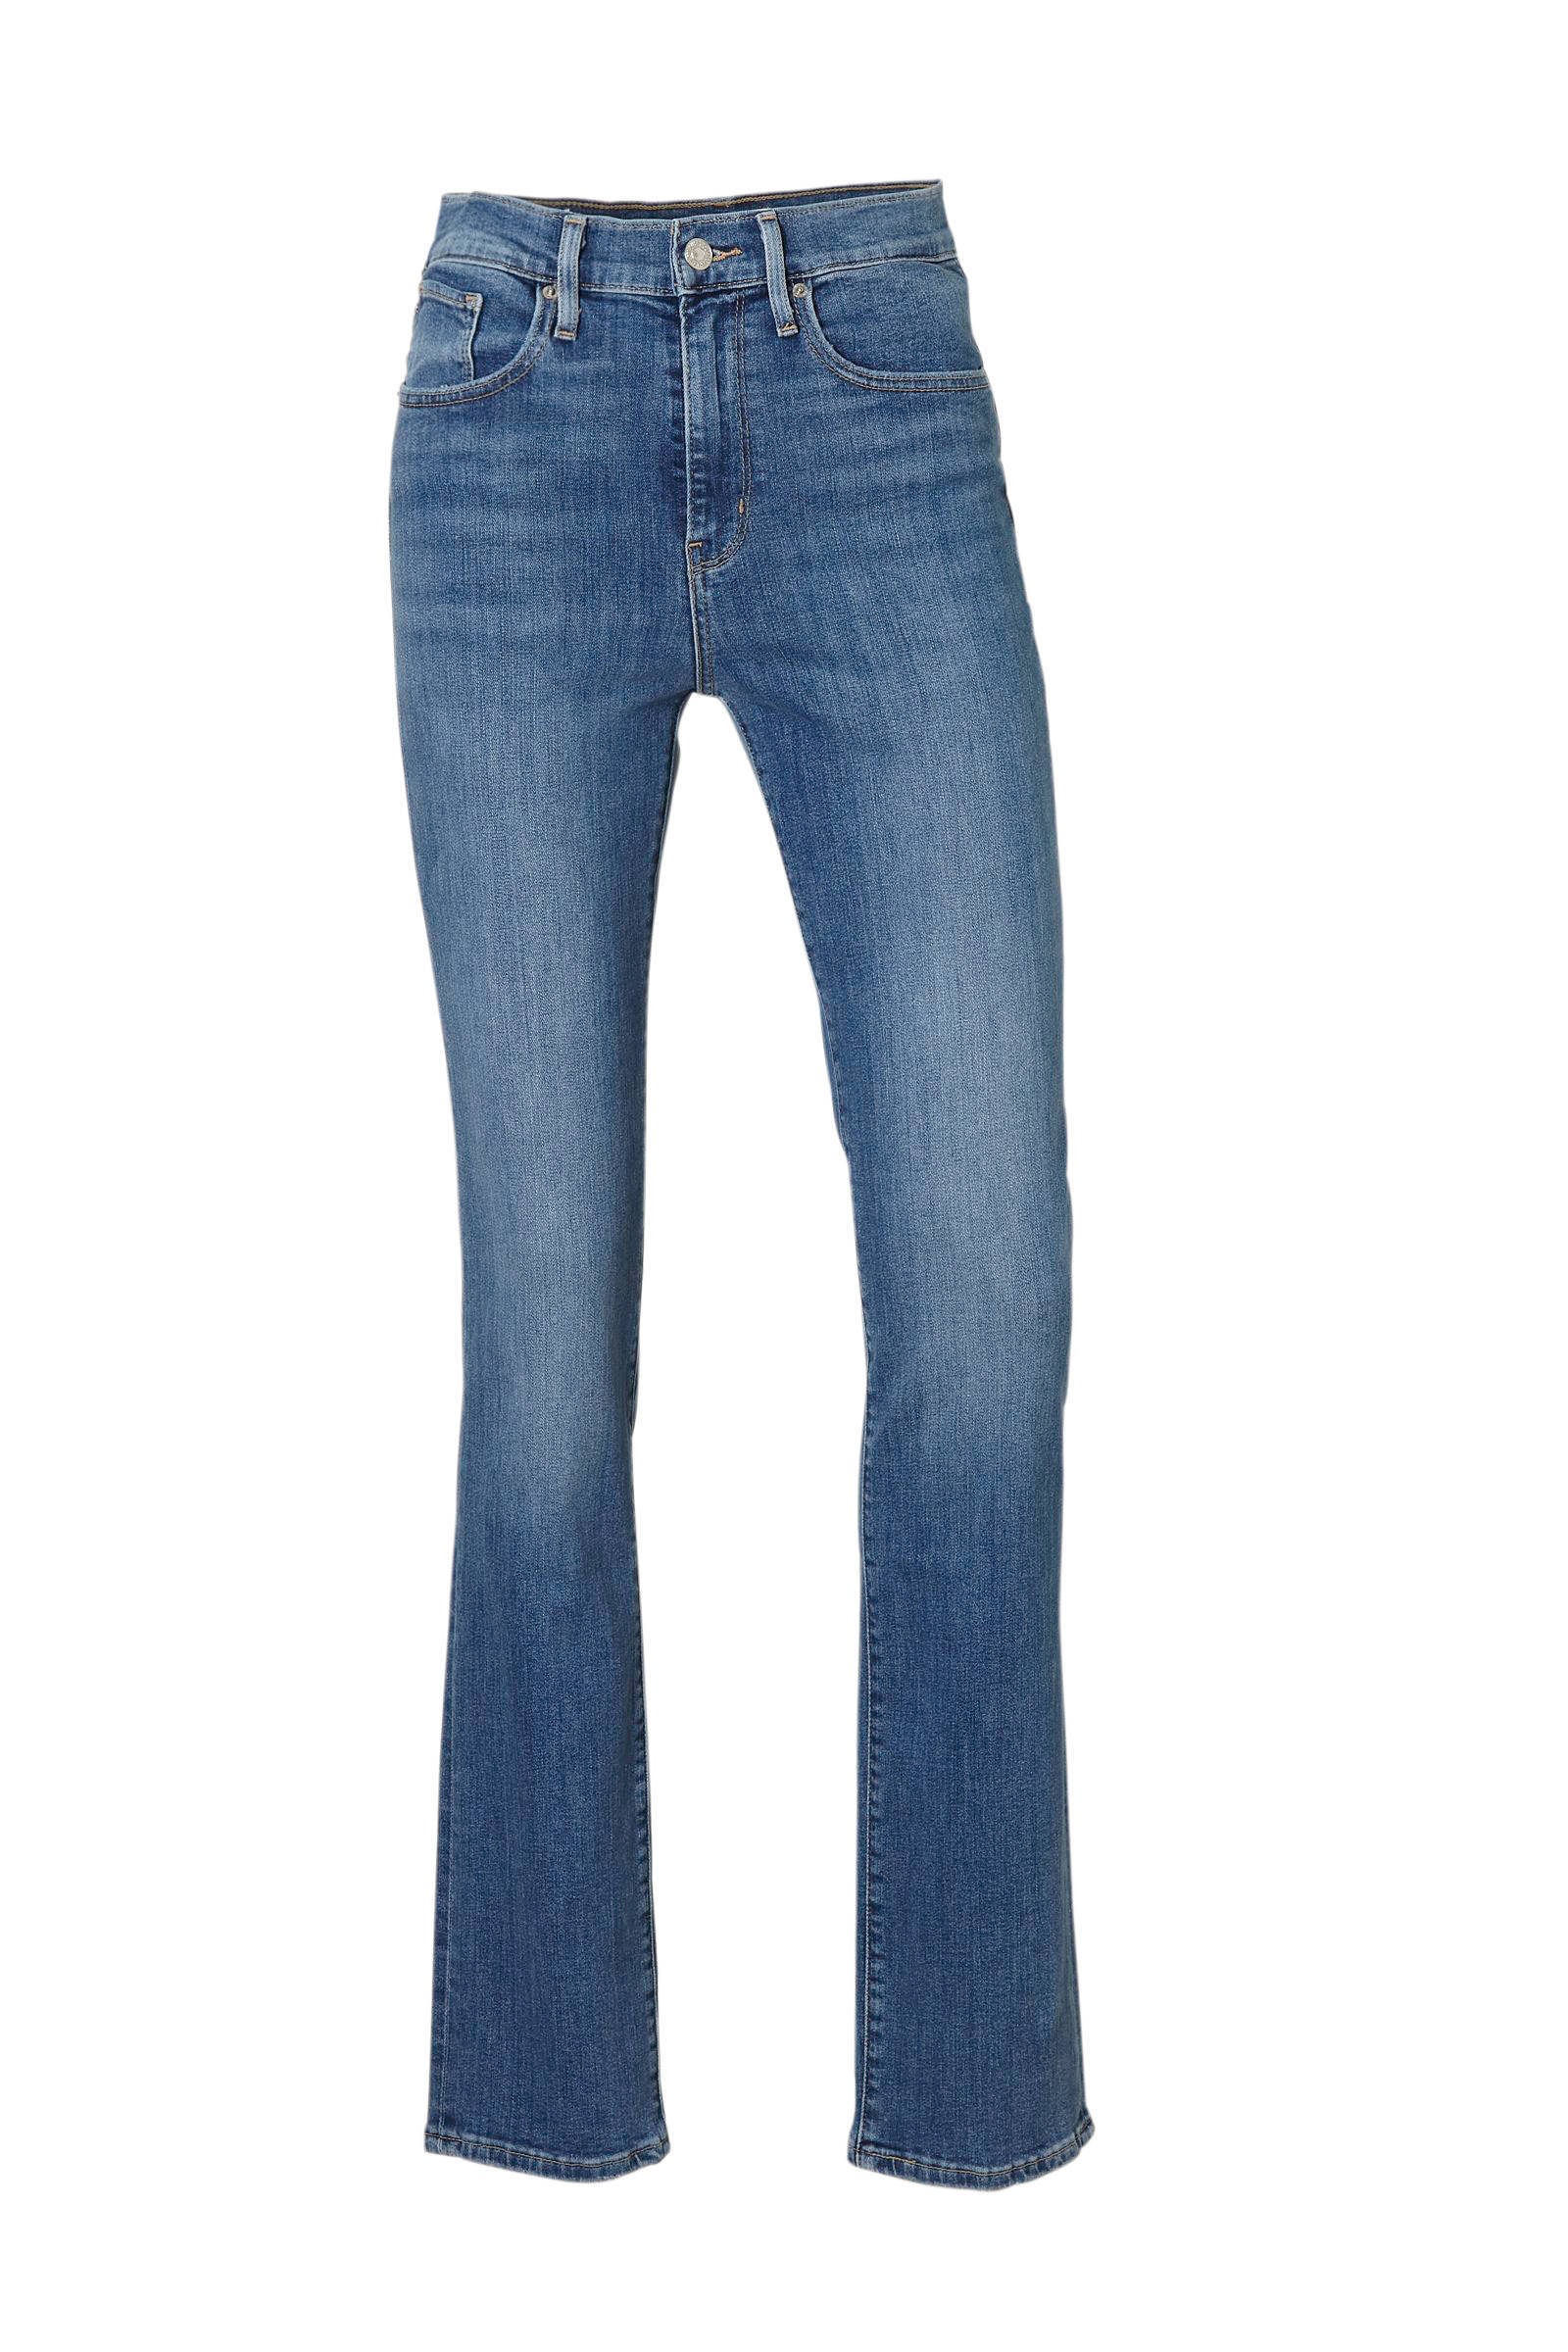 Levi's 724 high waist straight fit jeans (dames)